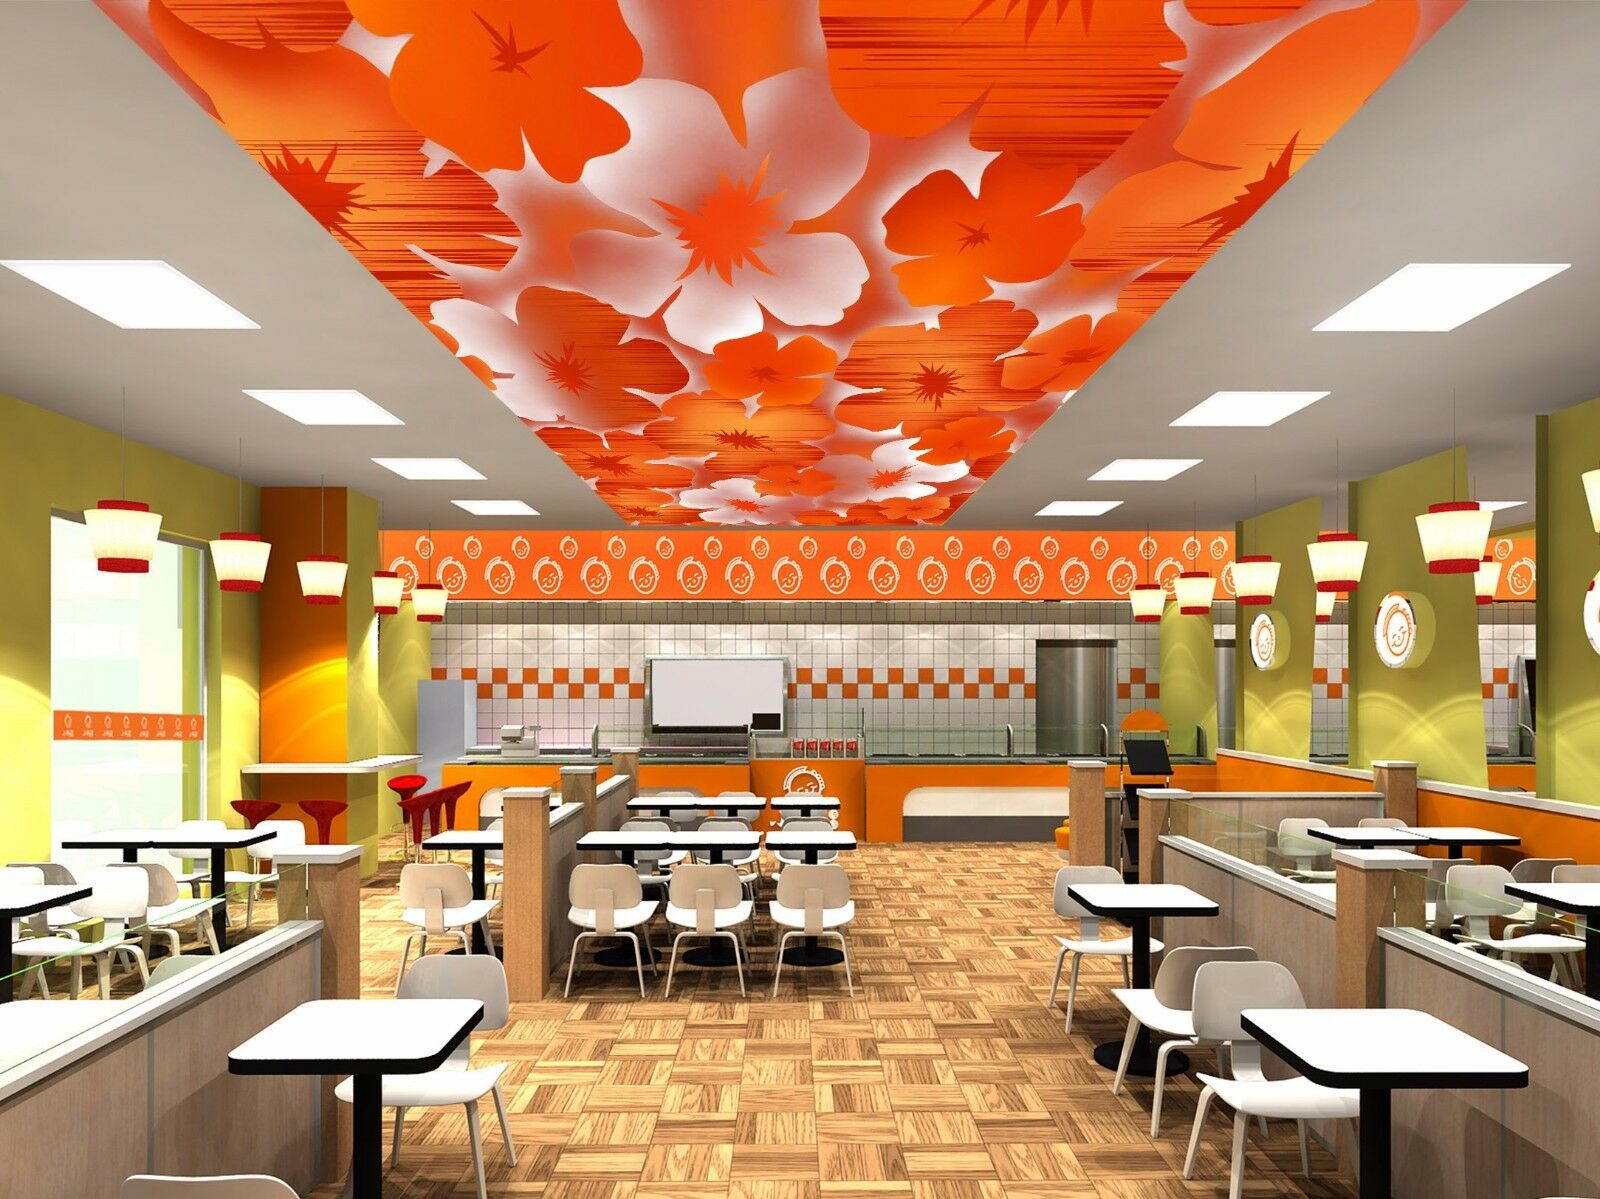 3D Orange Petals Ceiling WallPaper Murals Wall Print Decal AJ WALLPAPER US